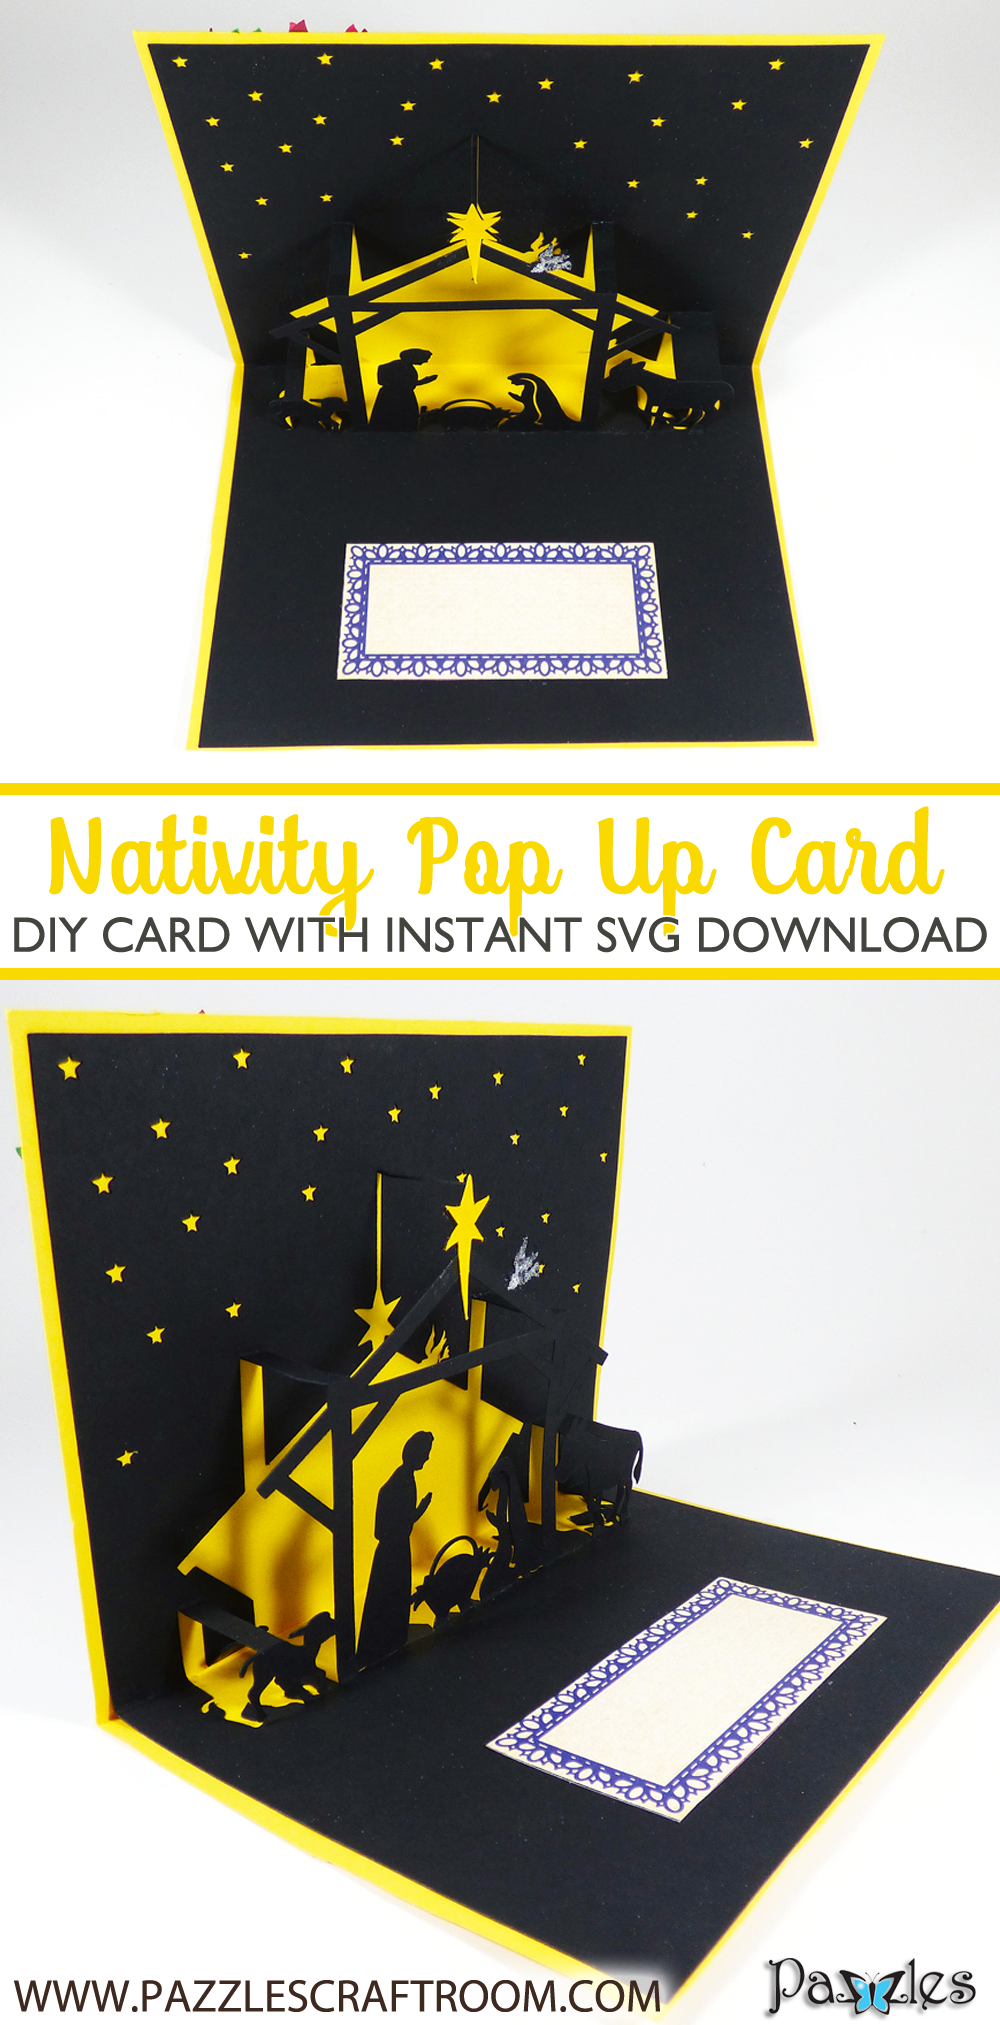 Pazzles DIY Christmas Nativity Pop Up Card with instant SVG download compatible with all major electronic cutters including Pazzles Inspiration, Cricut, and Silhouette Cameo. Design by Julie Flanagan.